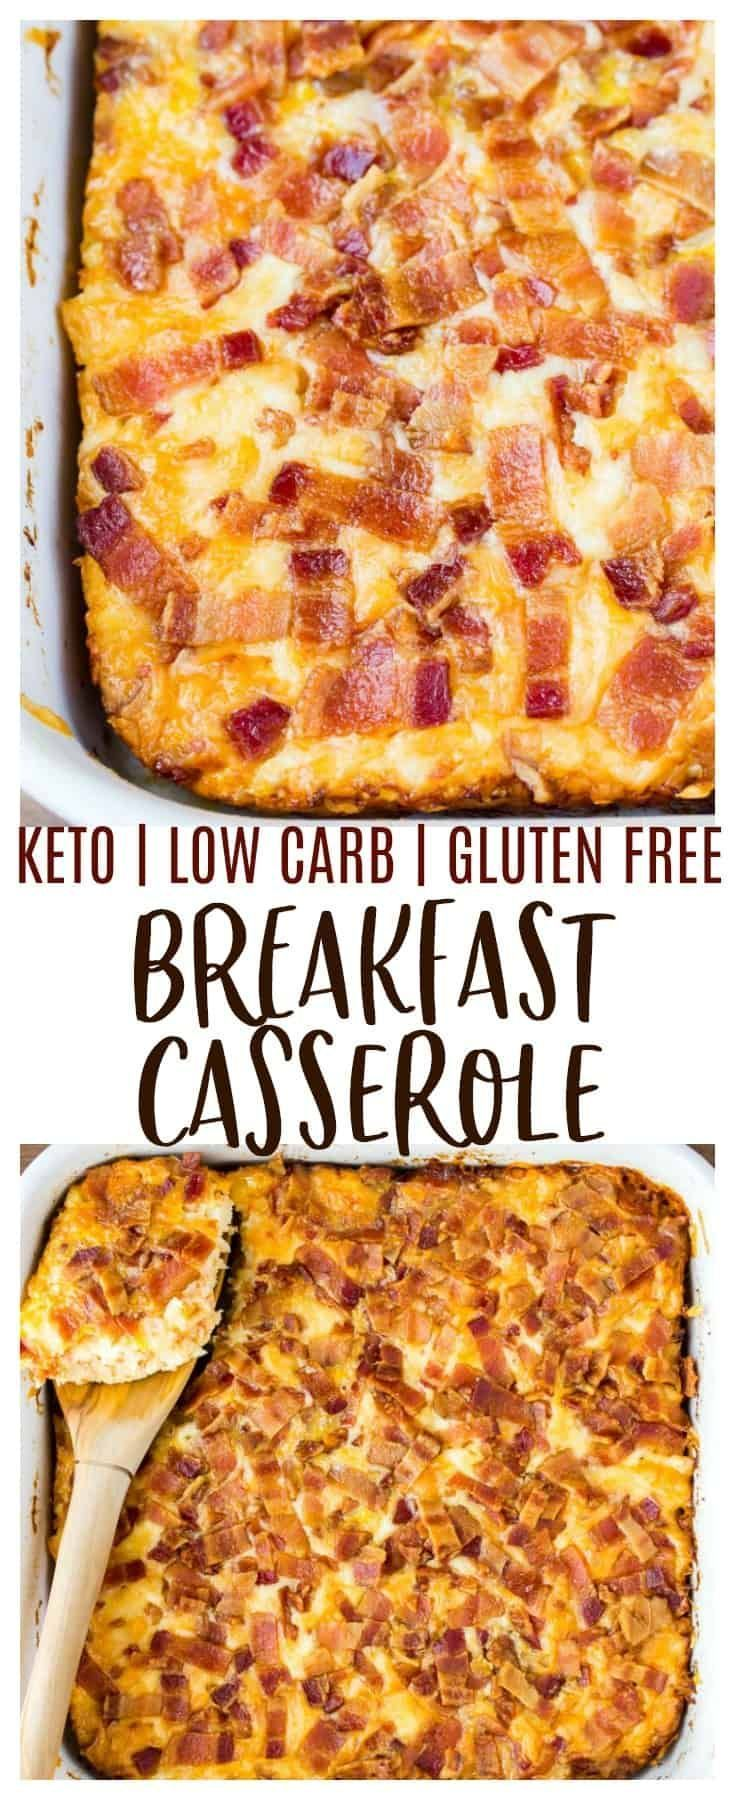 Keto Breakfast Casserole with Bacon, Cauliflower, and Cheese #ricedcauliflower